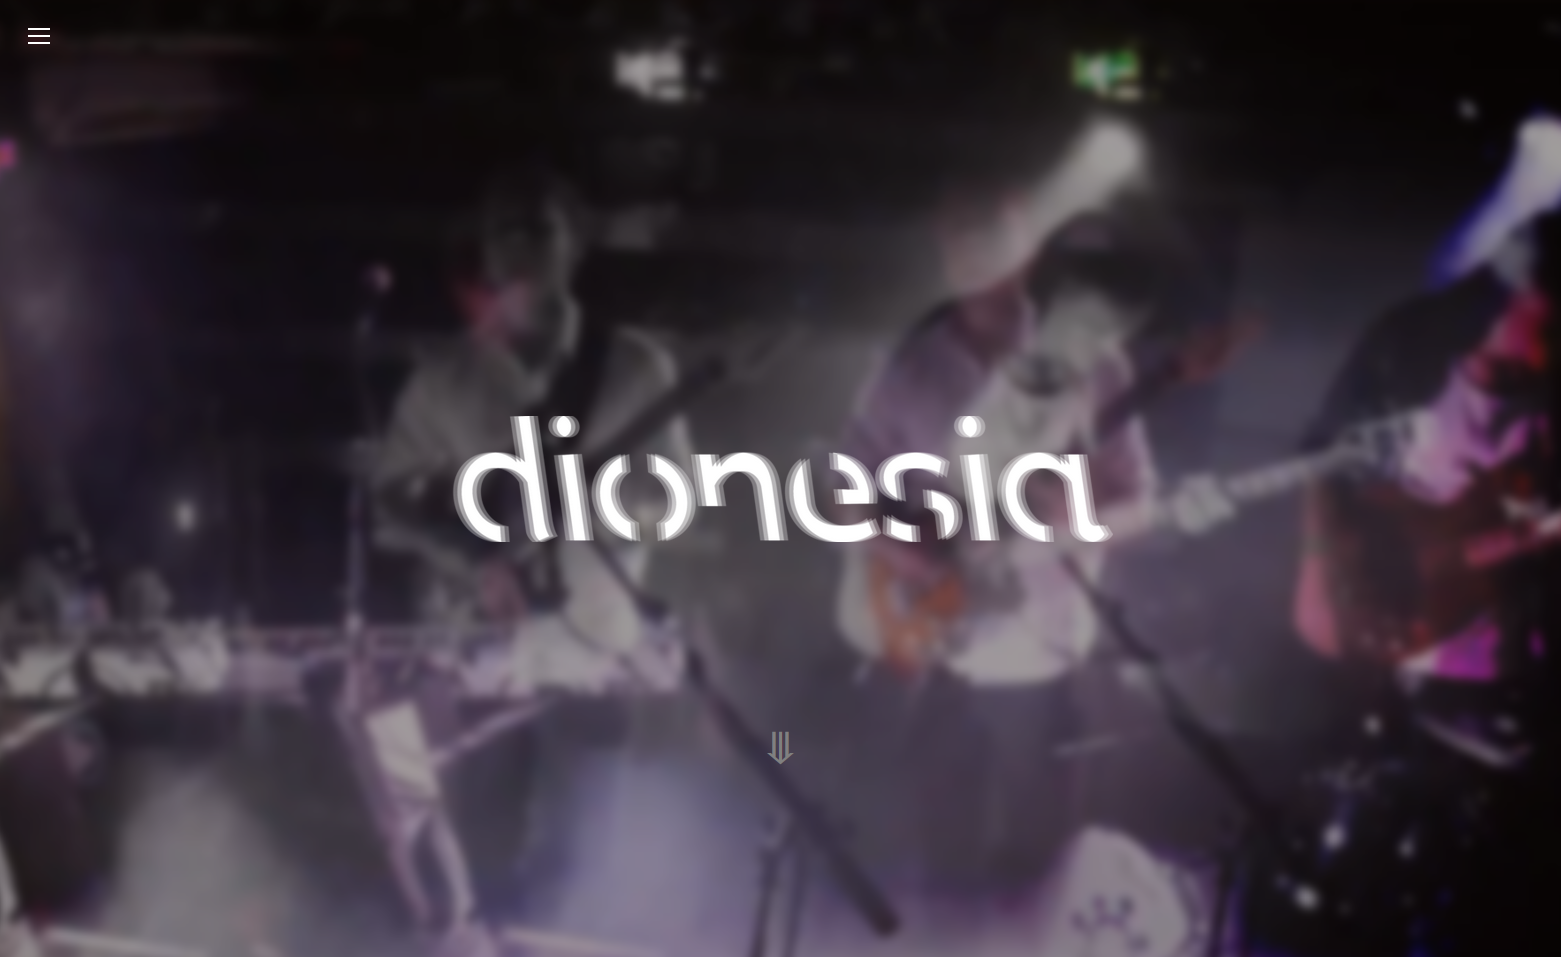 2019-02-28 15_45_56-Dionesia.png